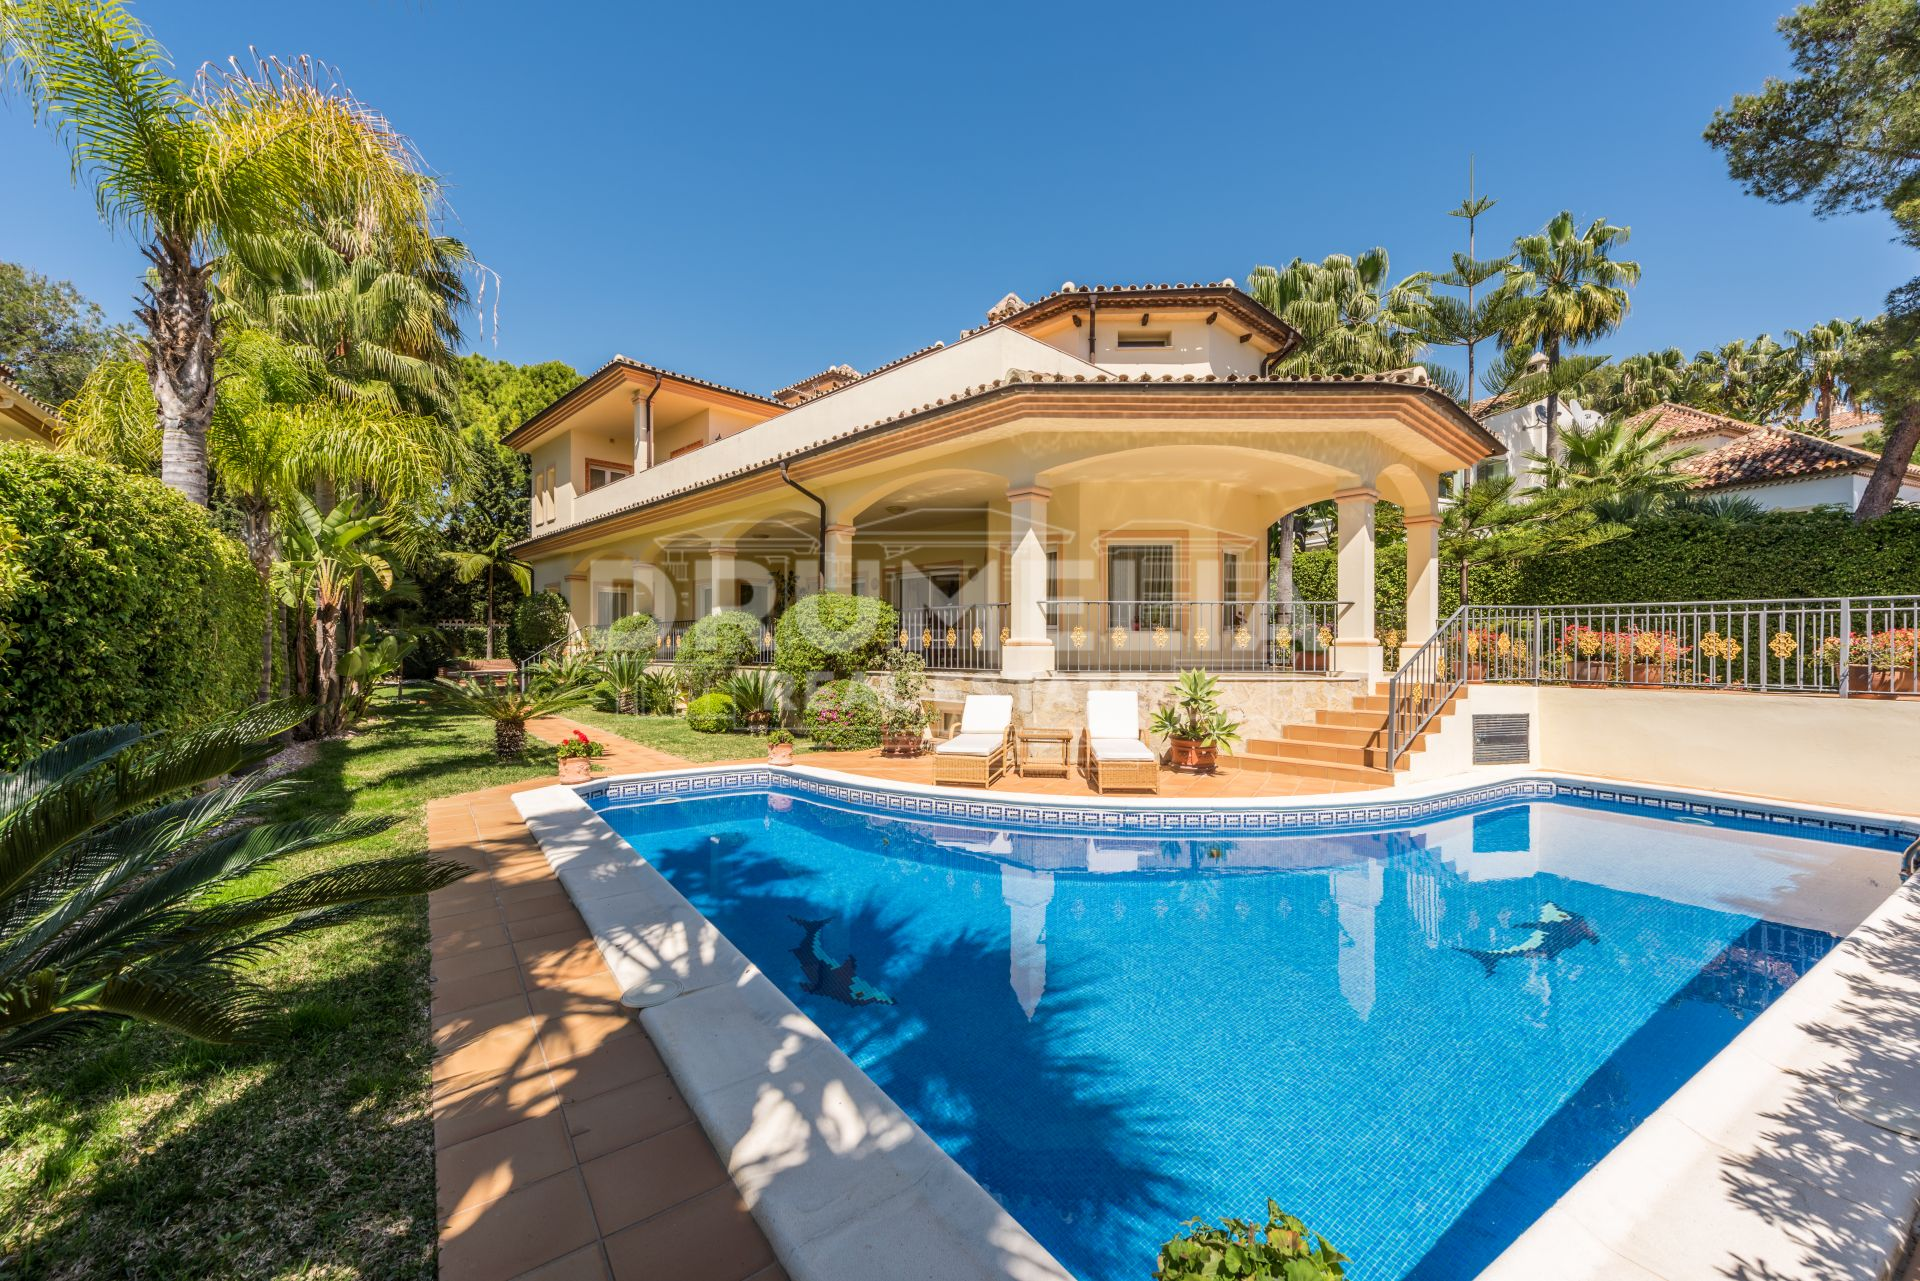 Marbella Golden Mile, Delightful Mediterranean Villa in Altos Reales